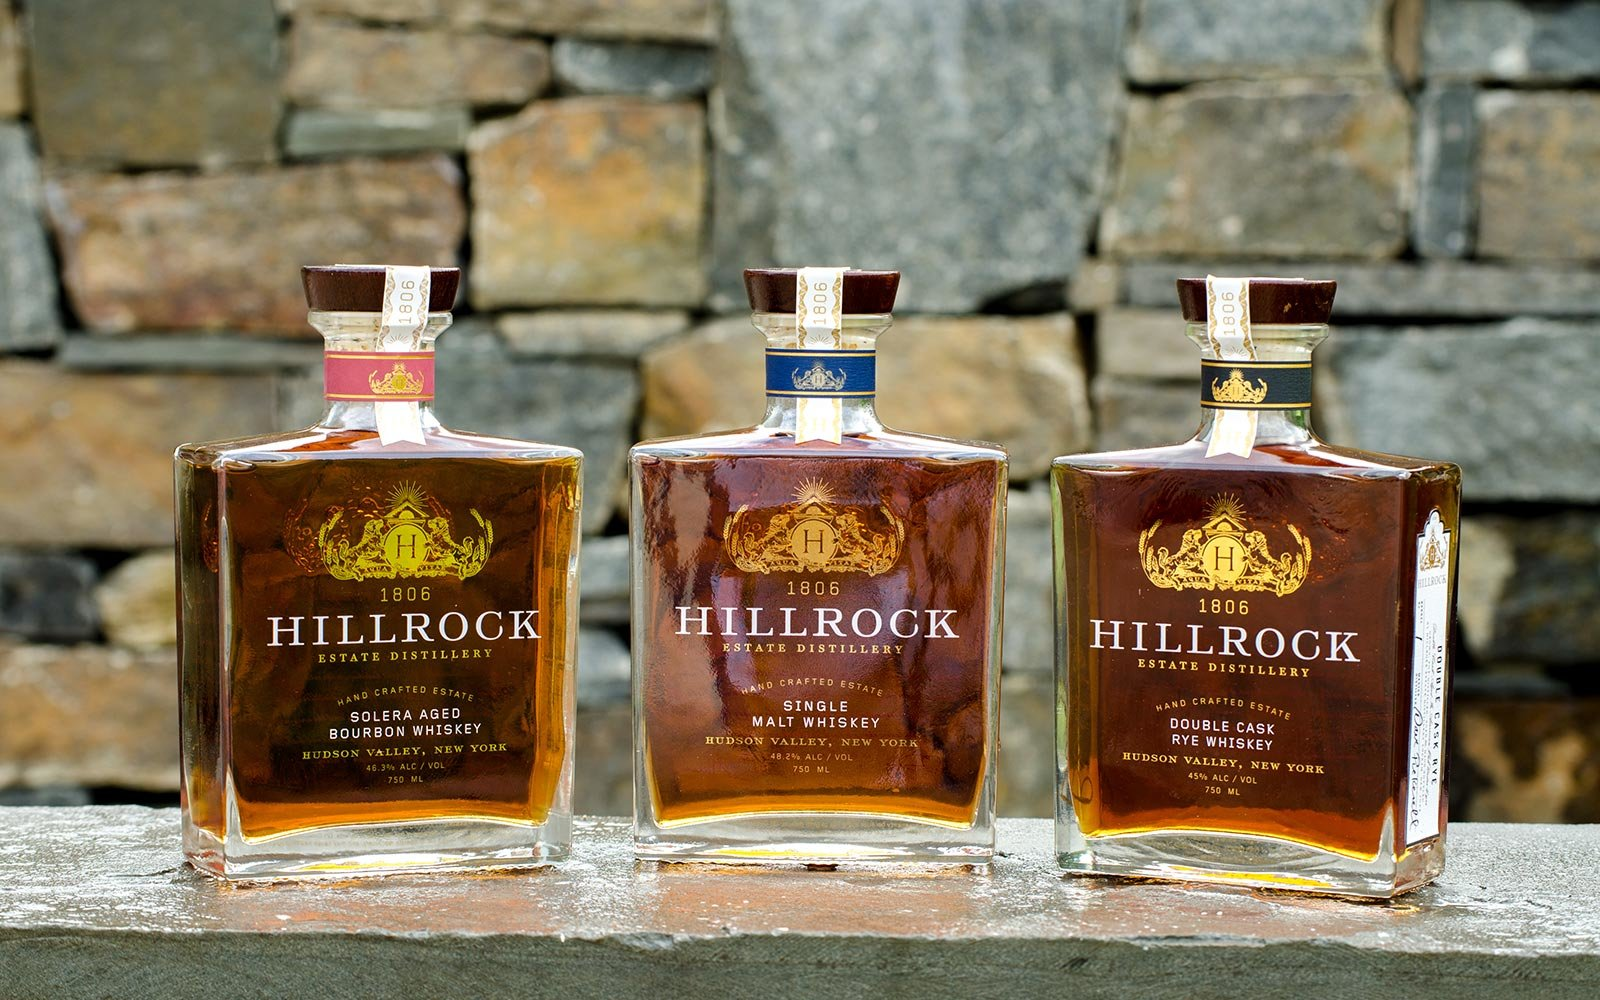 25. Hillrock Estate Distillery